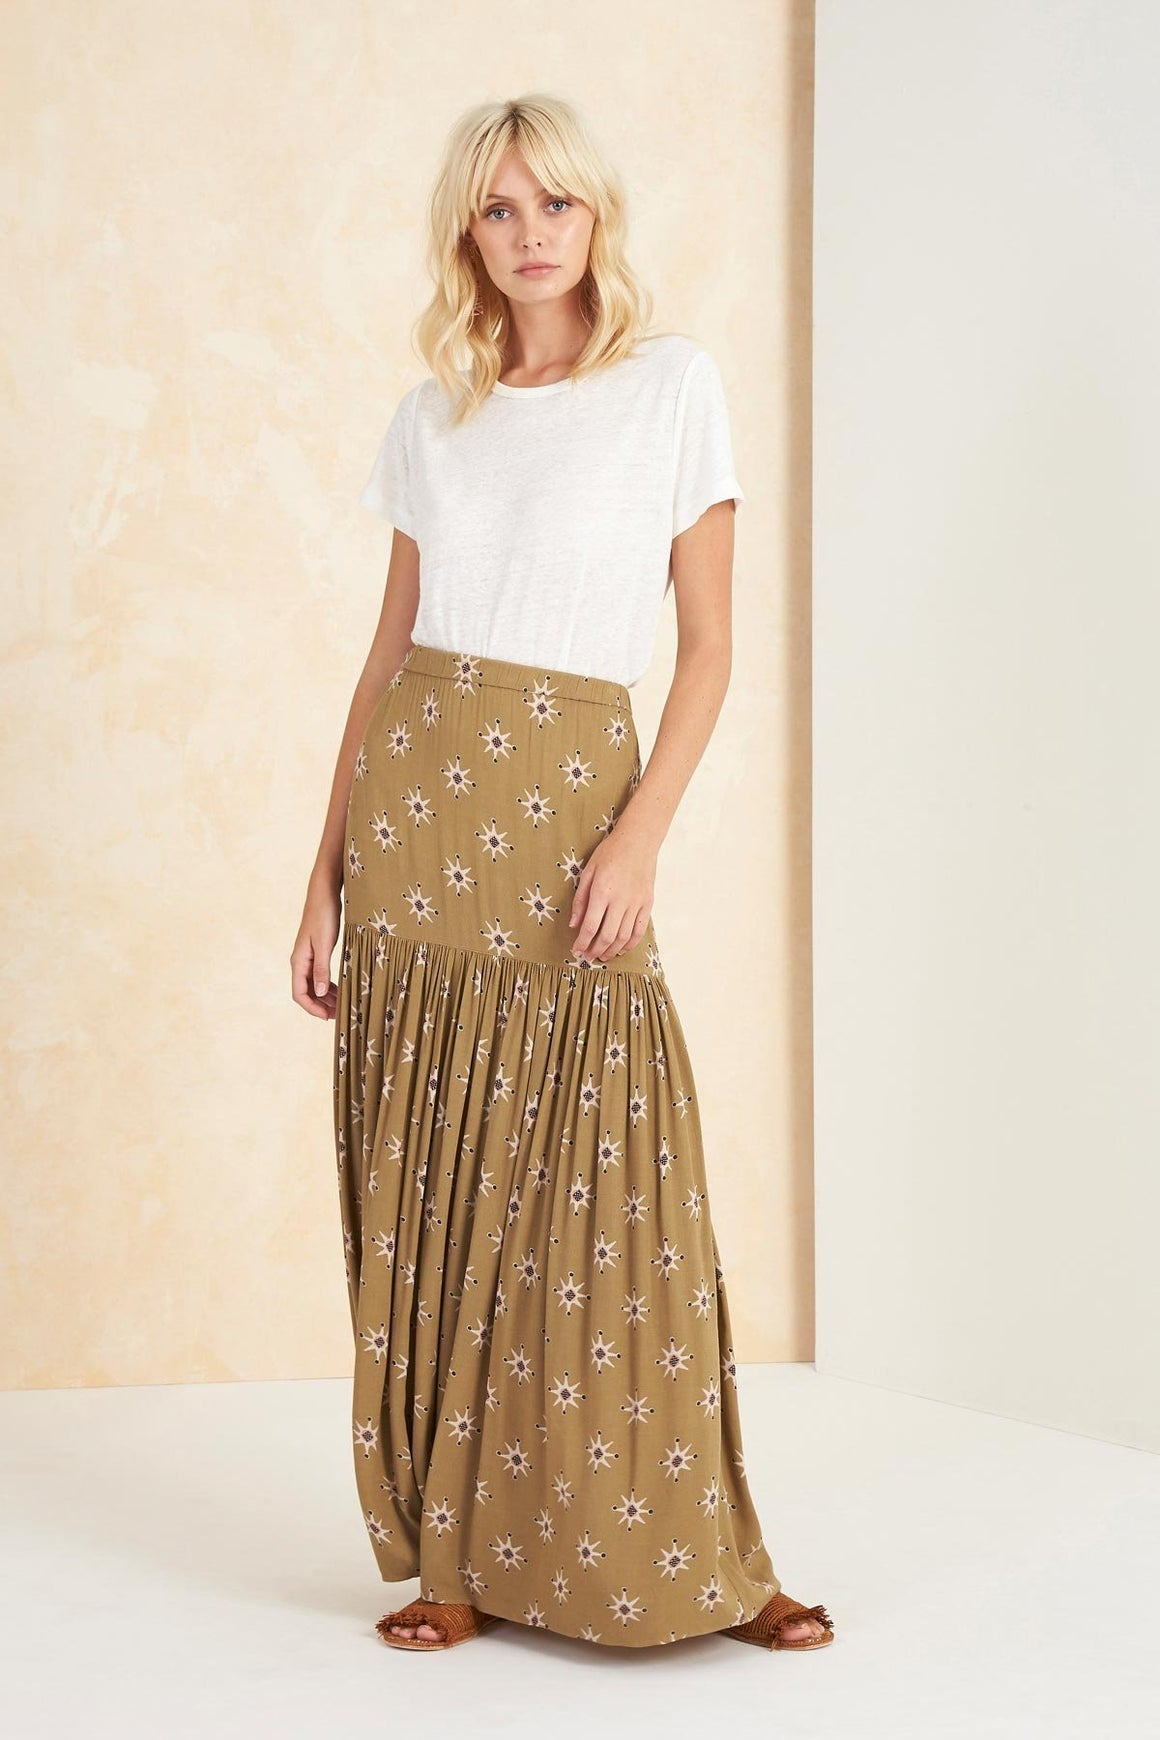 Tigerlily Soraya Skirt Olive | Shop Tigerlily Online at IKON NZ